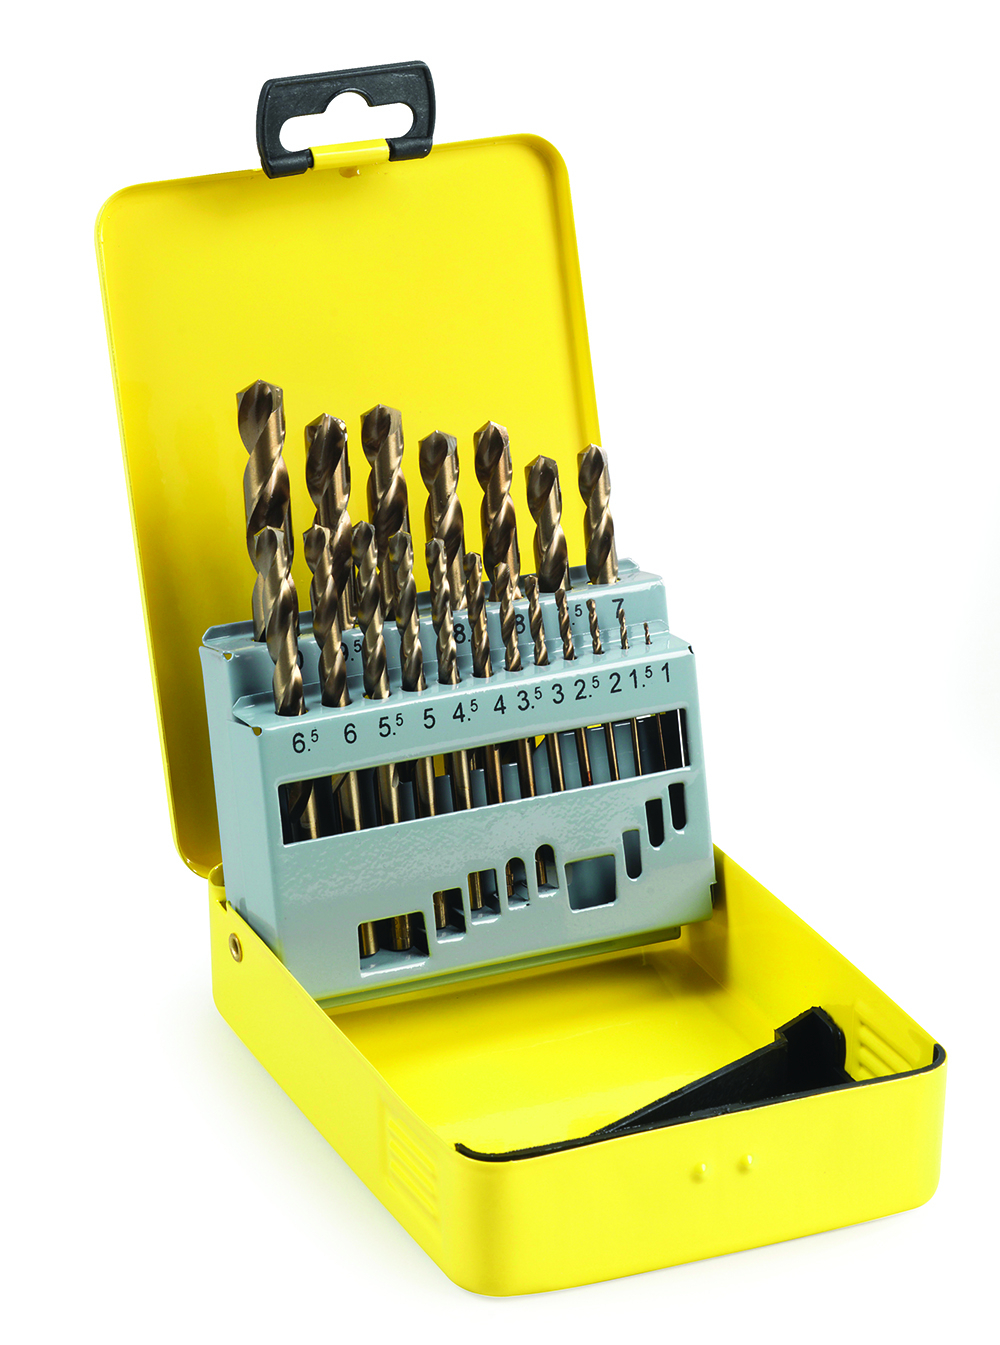 Addax Cobalt Jobber Drill Set 19 Pieces 1mm-10mm